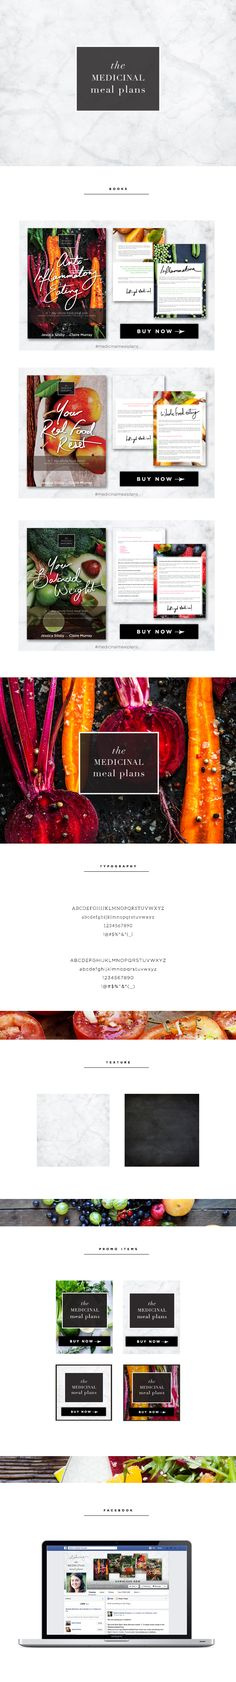 The Medicinal Meal Plans : branding and ebook design by Vari Longmuir at Buttercup Ink. Like my style? Click for more info >> http://www.buttercupink.com/wp-content/uploads/2014/11/LuxeBranding_TheDetails_Nov14.pdf #handlettering #graphicdesign #ebook